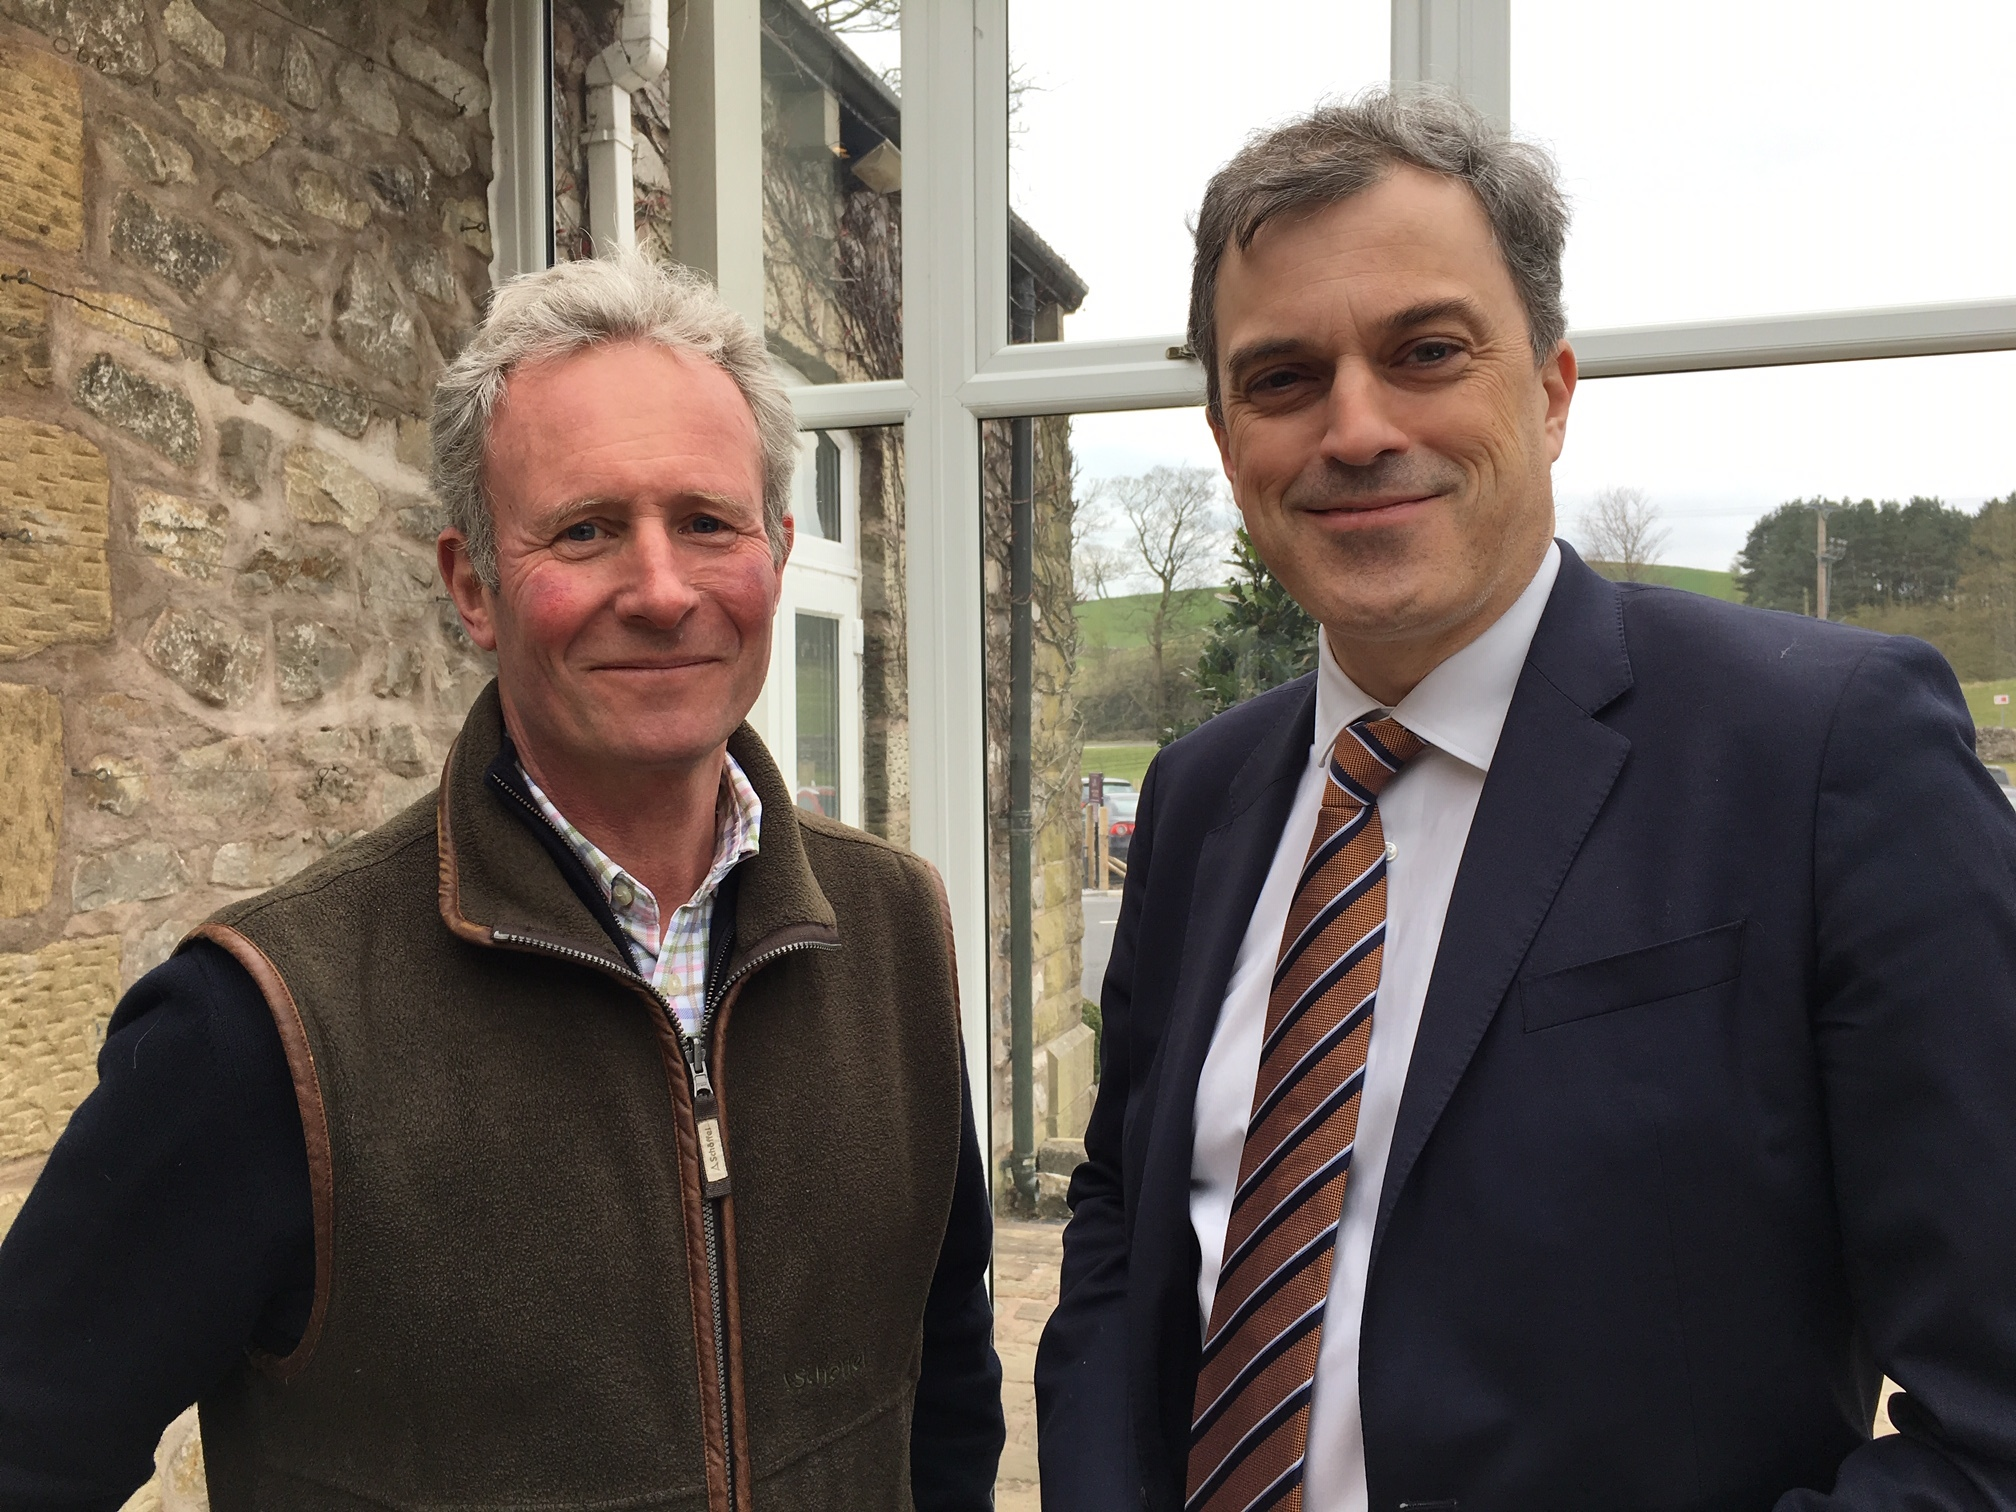 Philip Farrer, left, and Julian Smith, Skipton MP, discuss Clapham Primary School